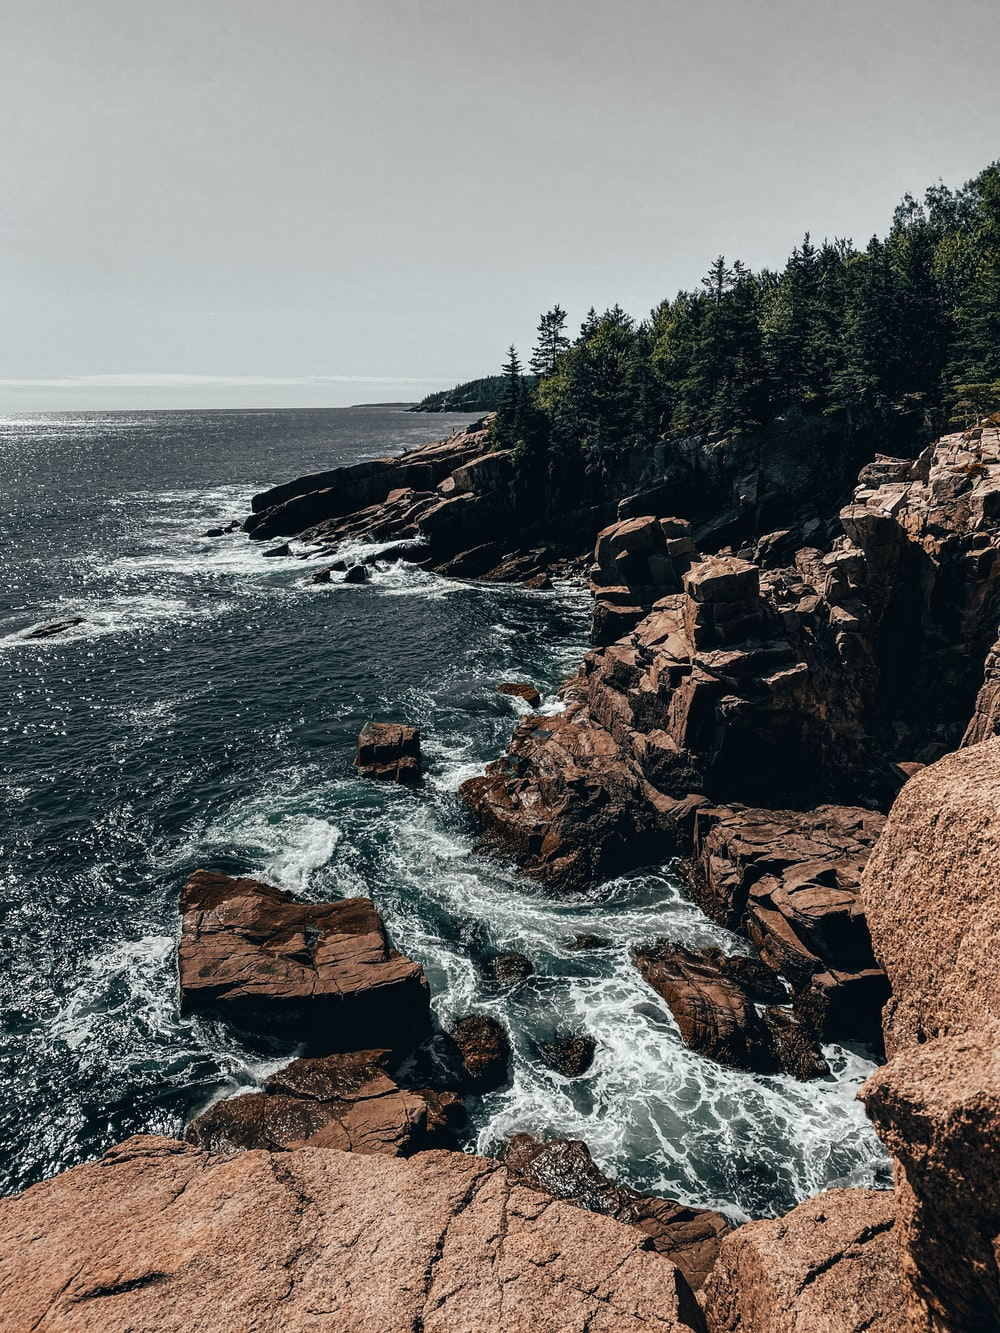 brown rocky shore with green trees and ocean waves during daytime